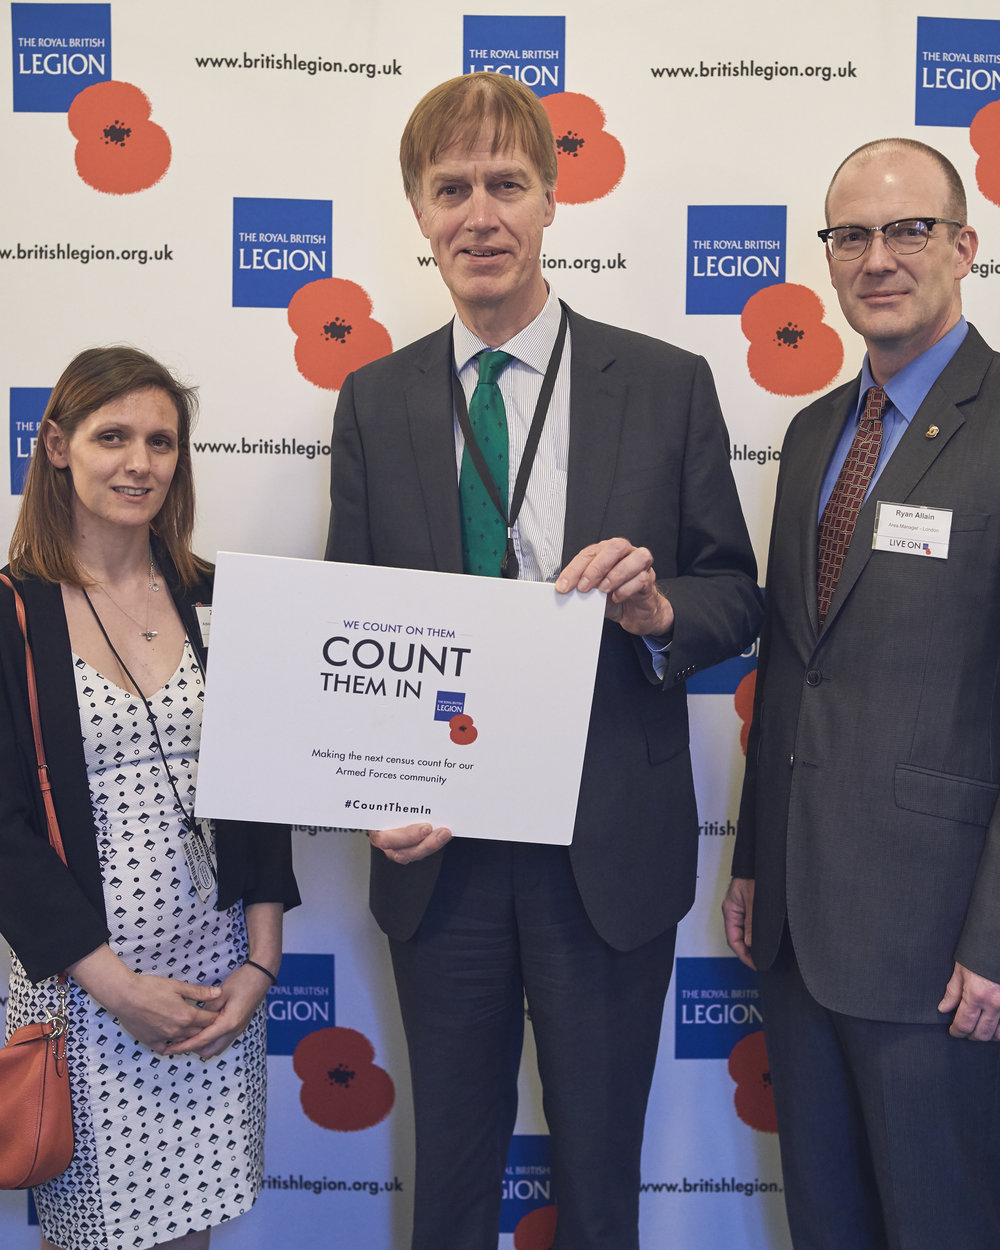 Rt Hon Stephen Timms MP with Zoe Martin and Ryan Allain.jpg